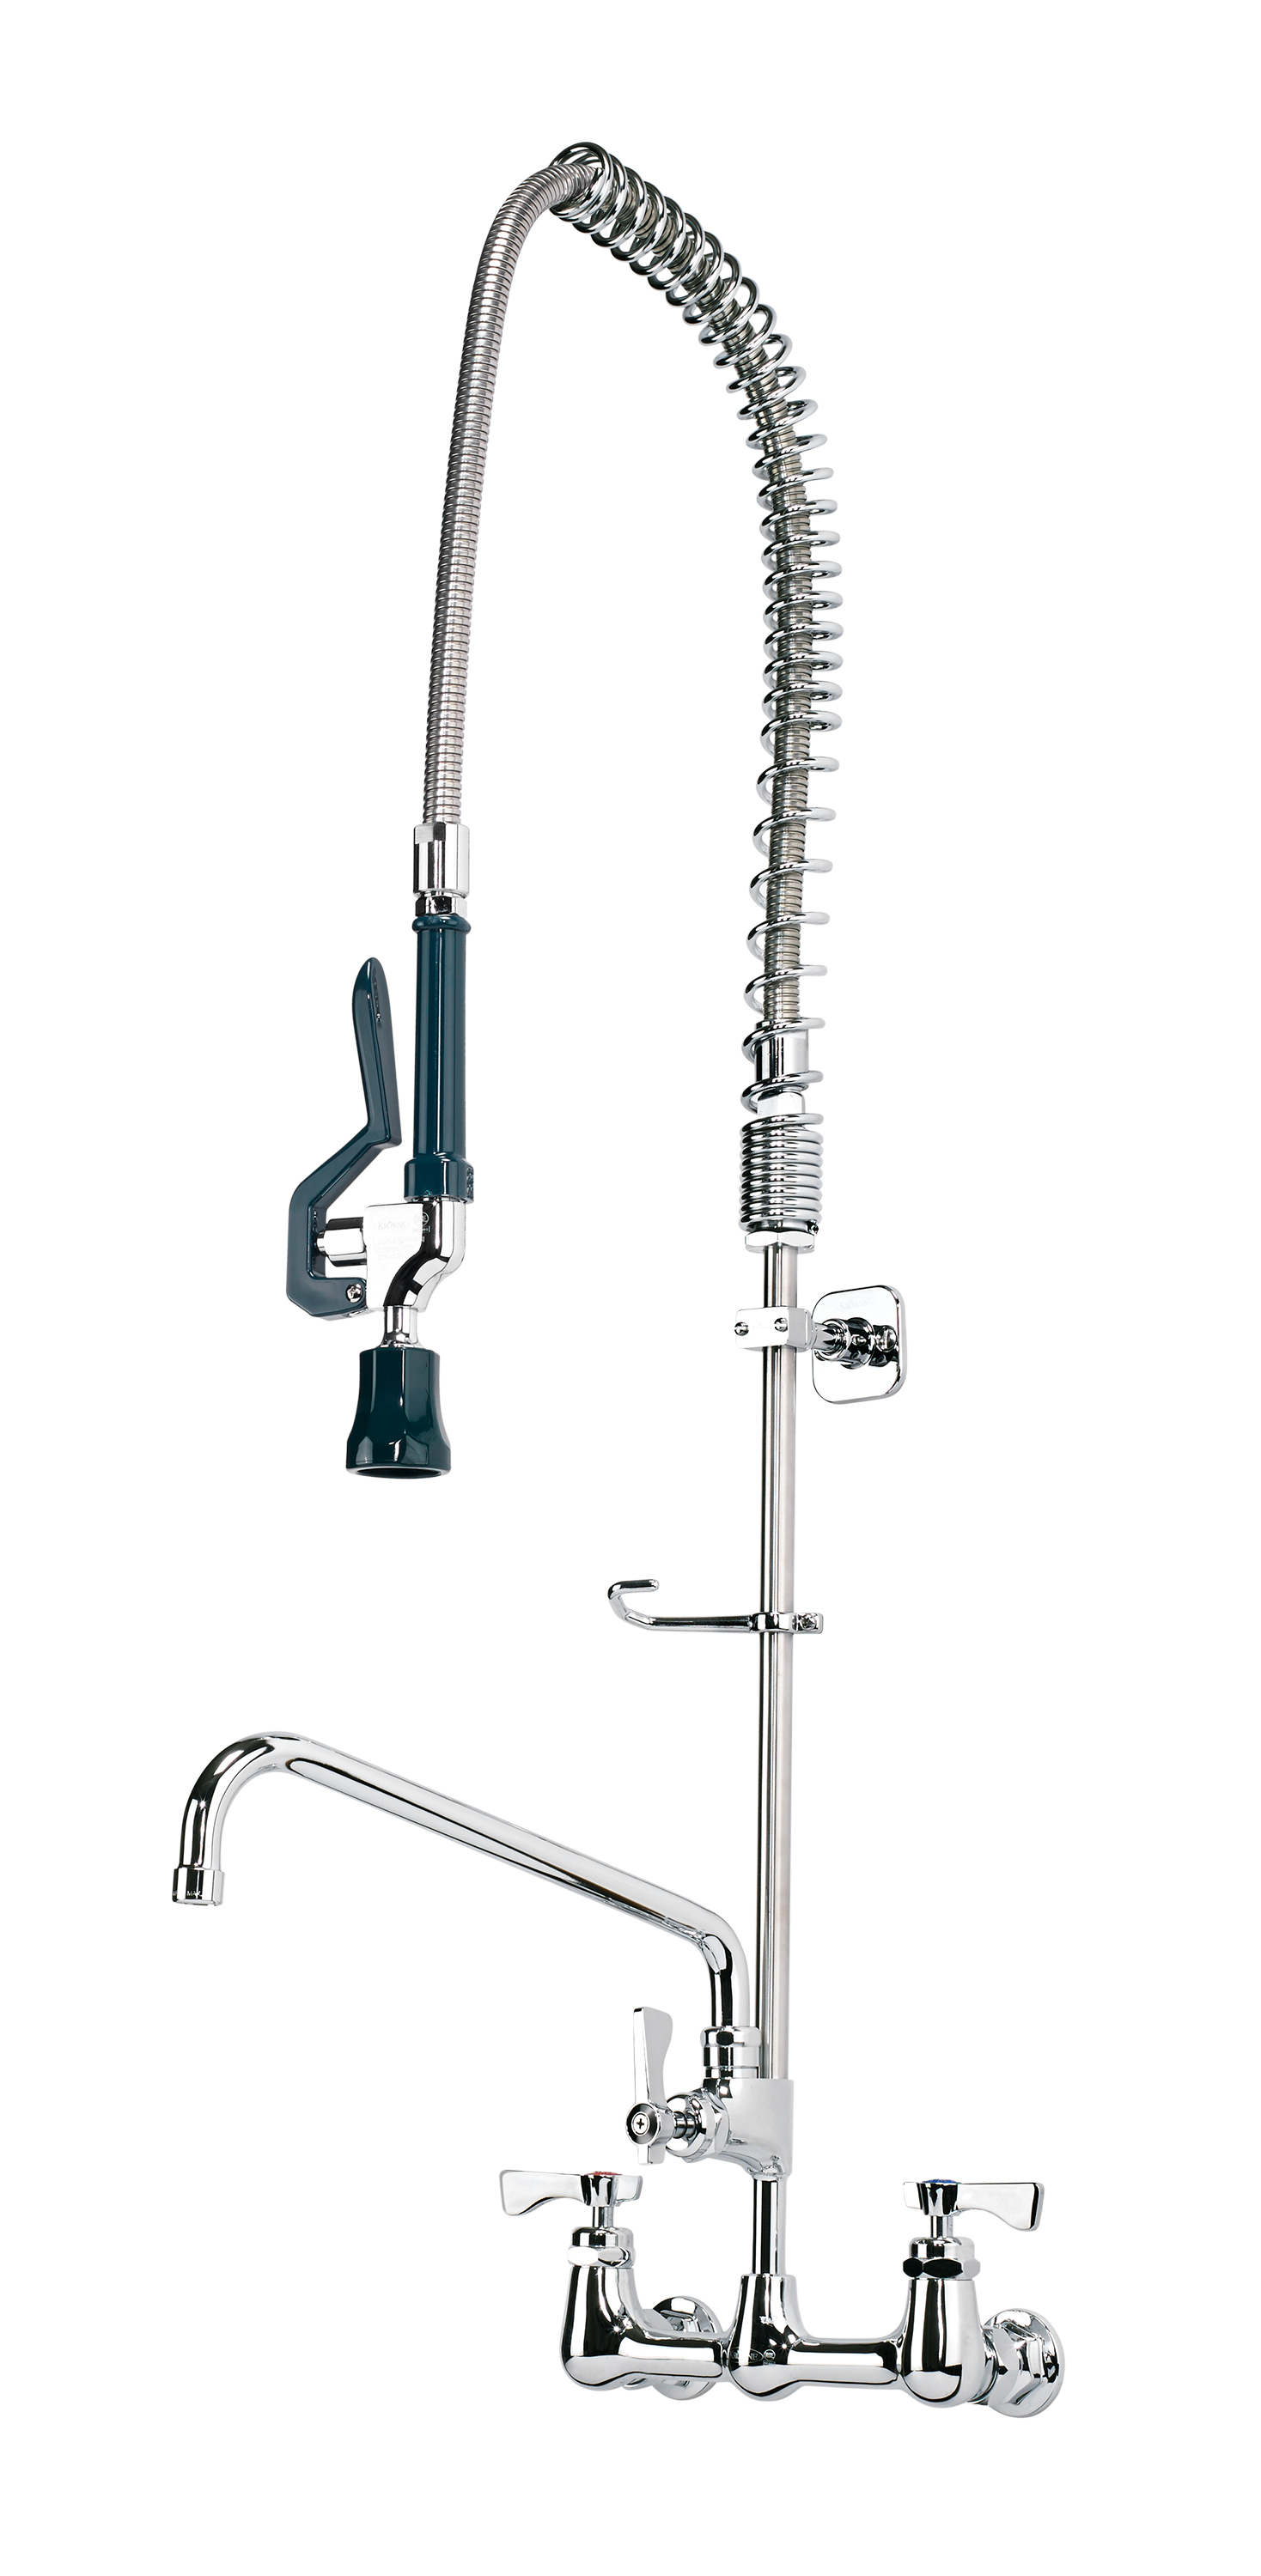 Krowne Metal 17-109WL pre-rinse faucet assembly, with add on faucet